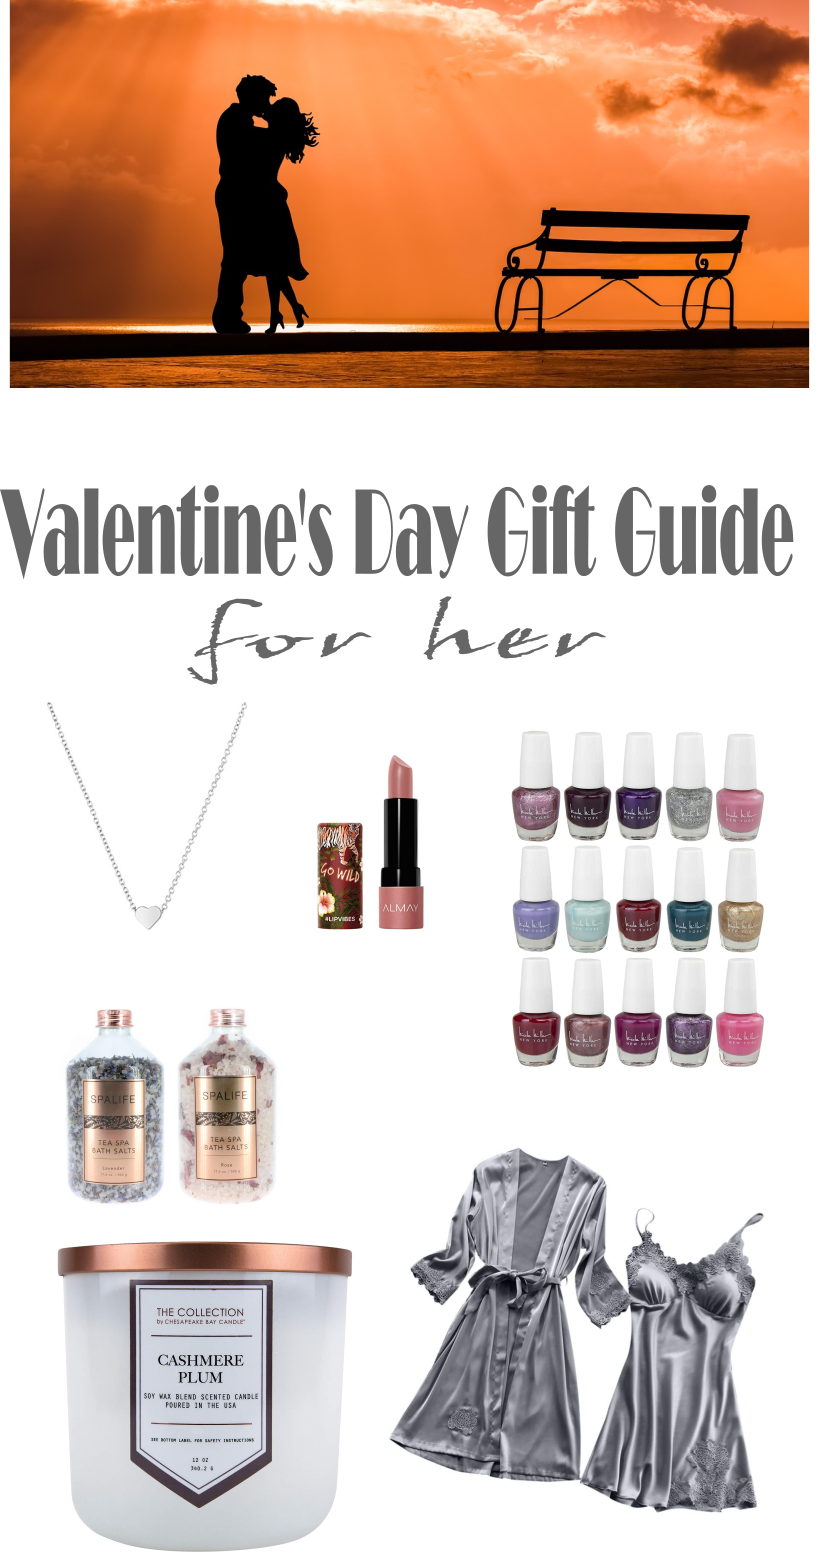 Valentine's Day Gift Guide for Her: 10 Fun Ideas